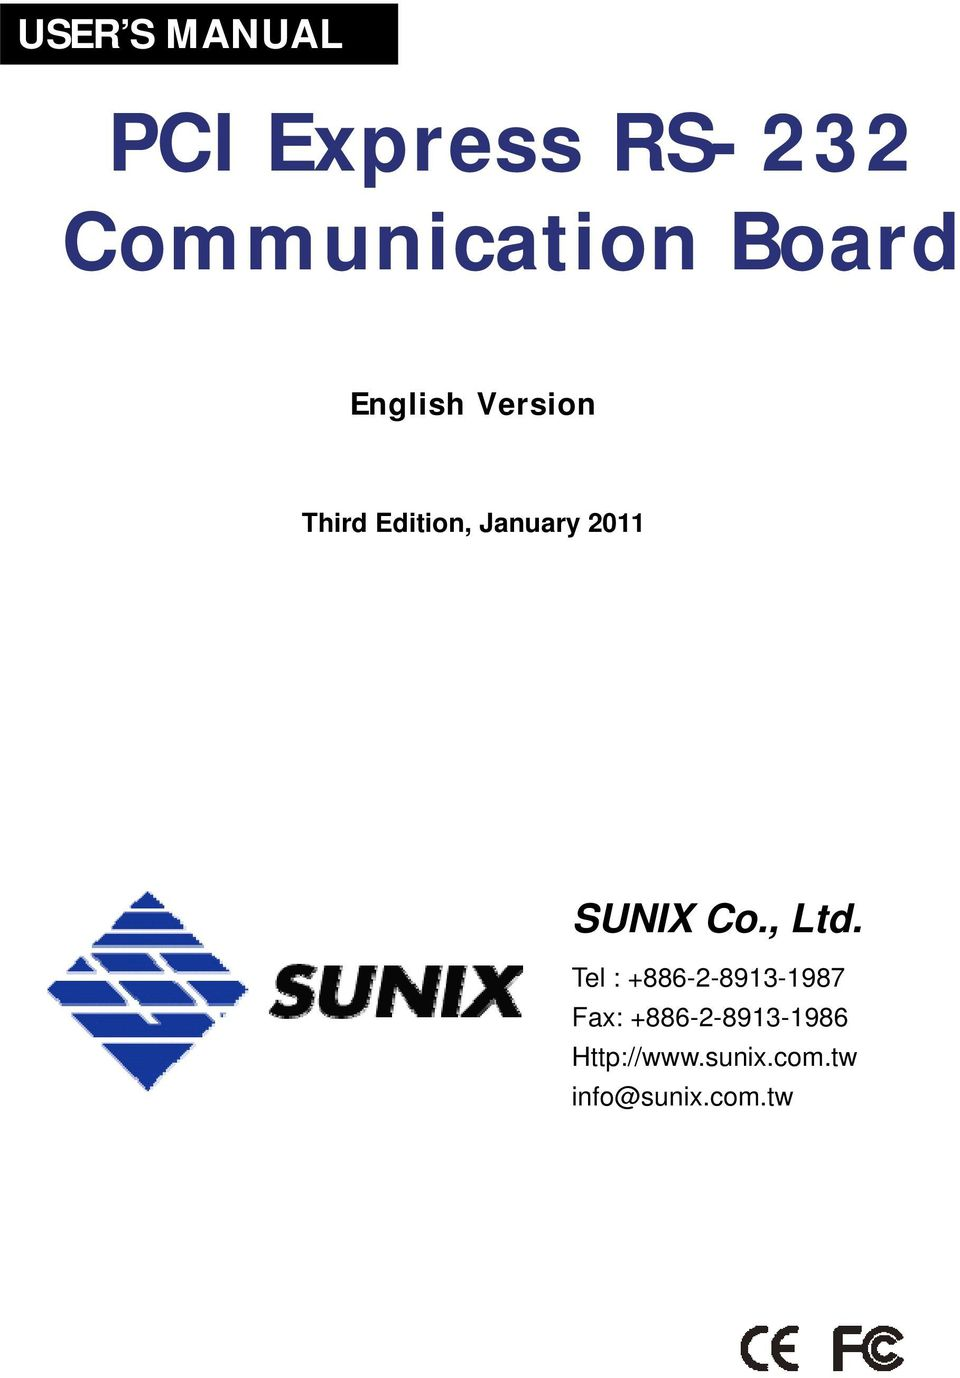 SUNIX Co., Ltd.